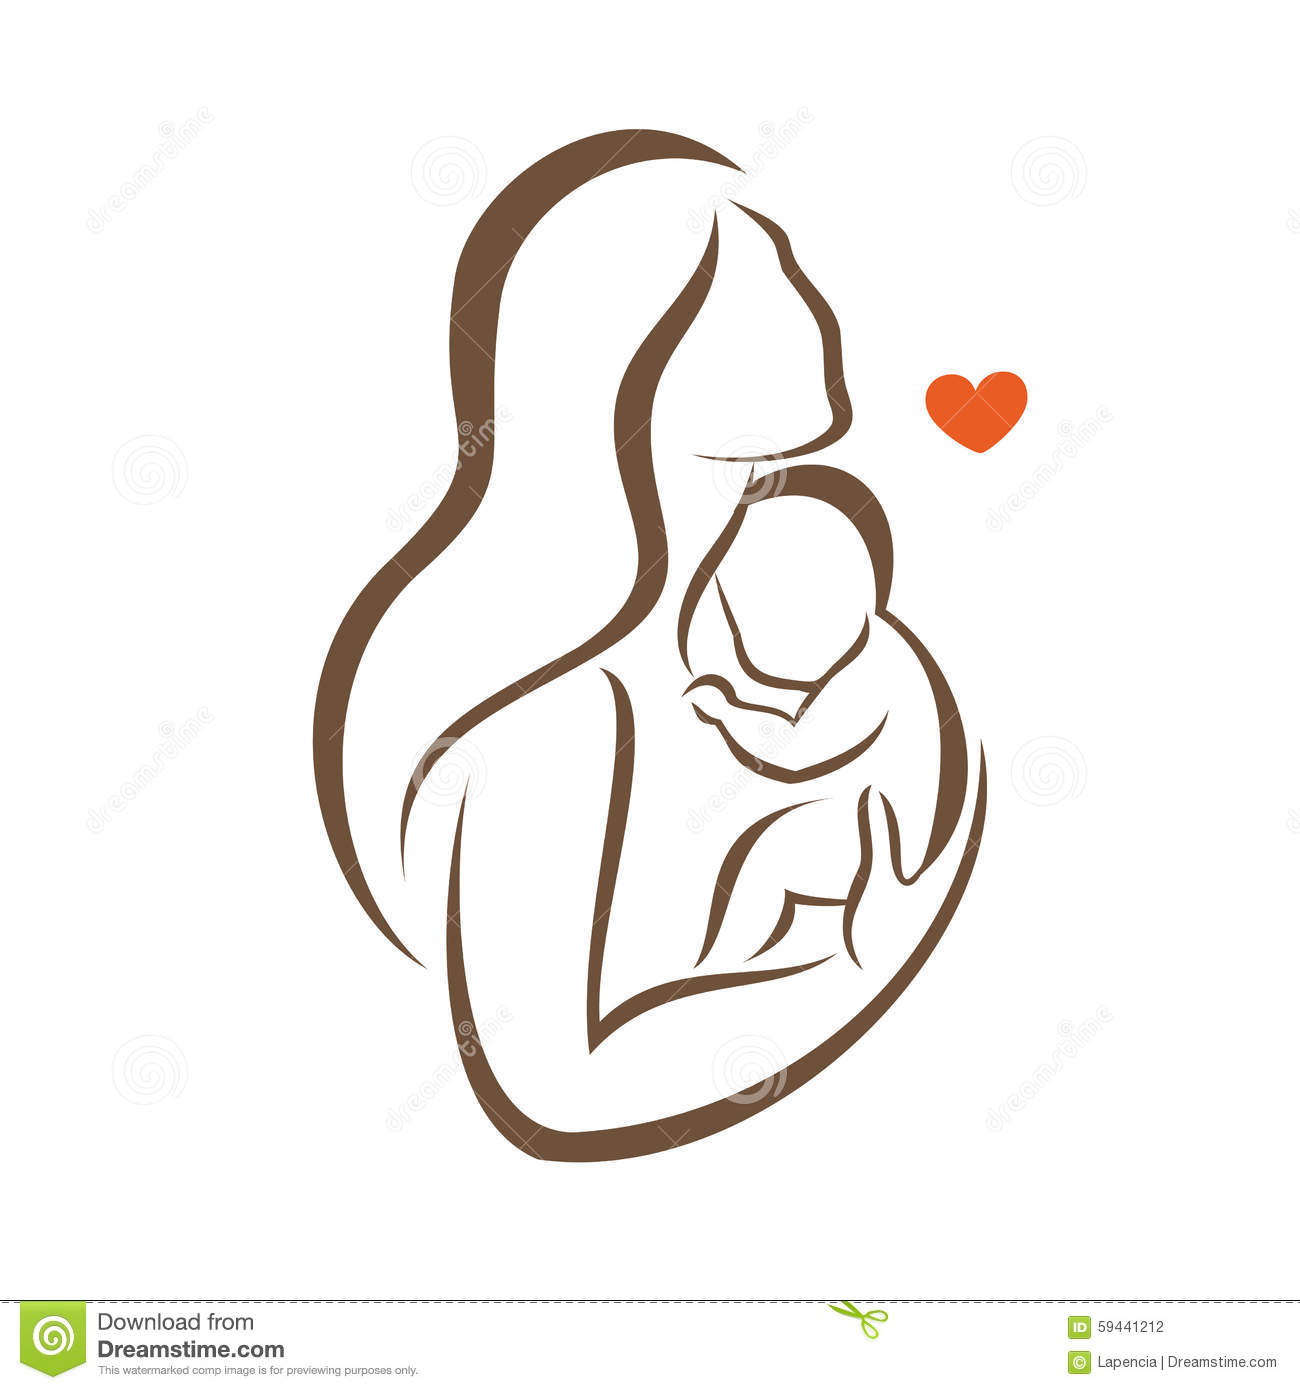 Stock Illustration Mother Baby Stylized Vector Silhouette Outlined Sketch Mom Child Image59441212 further Mom Dad Swallow Tattoo Design additionally Chemical Soup additionally Stock Illustration Bible People Tree Root Christian Logo Family Book Church Vector Symbol Design Set Image58692667 as well Parent Clip Art Images Free. on loving mother drawing